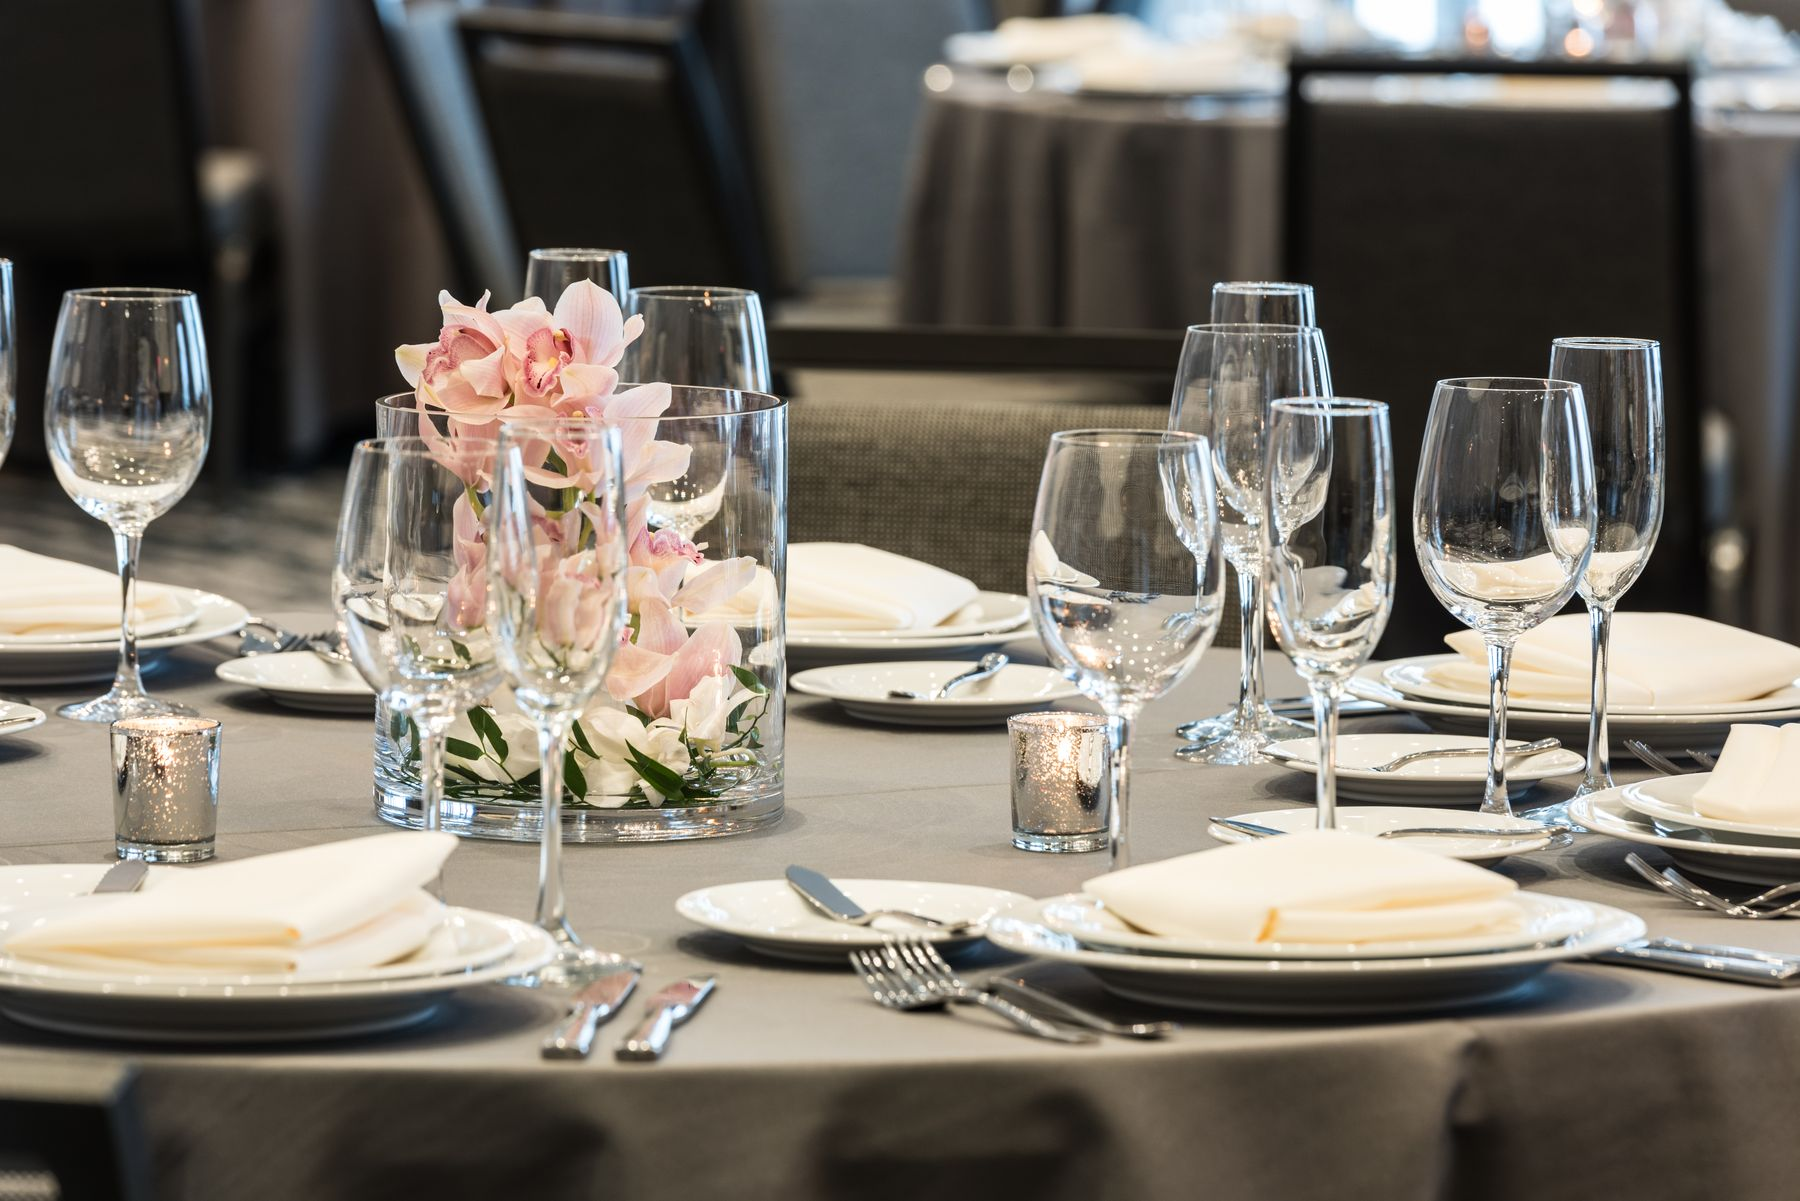 Banquet table set for event